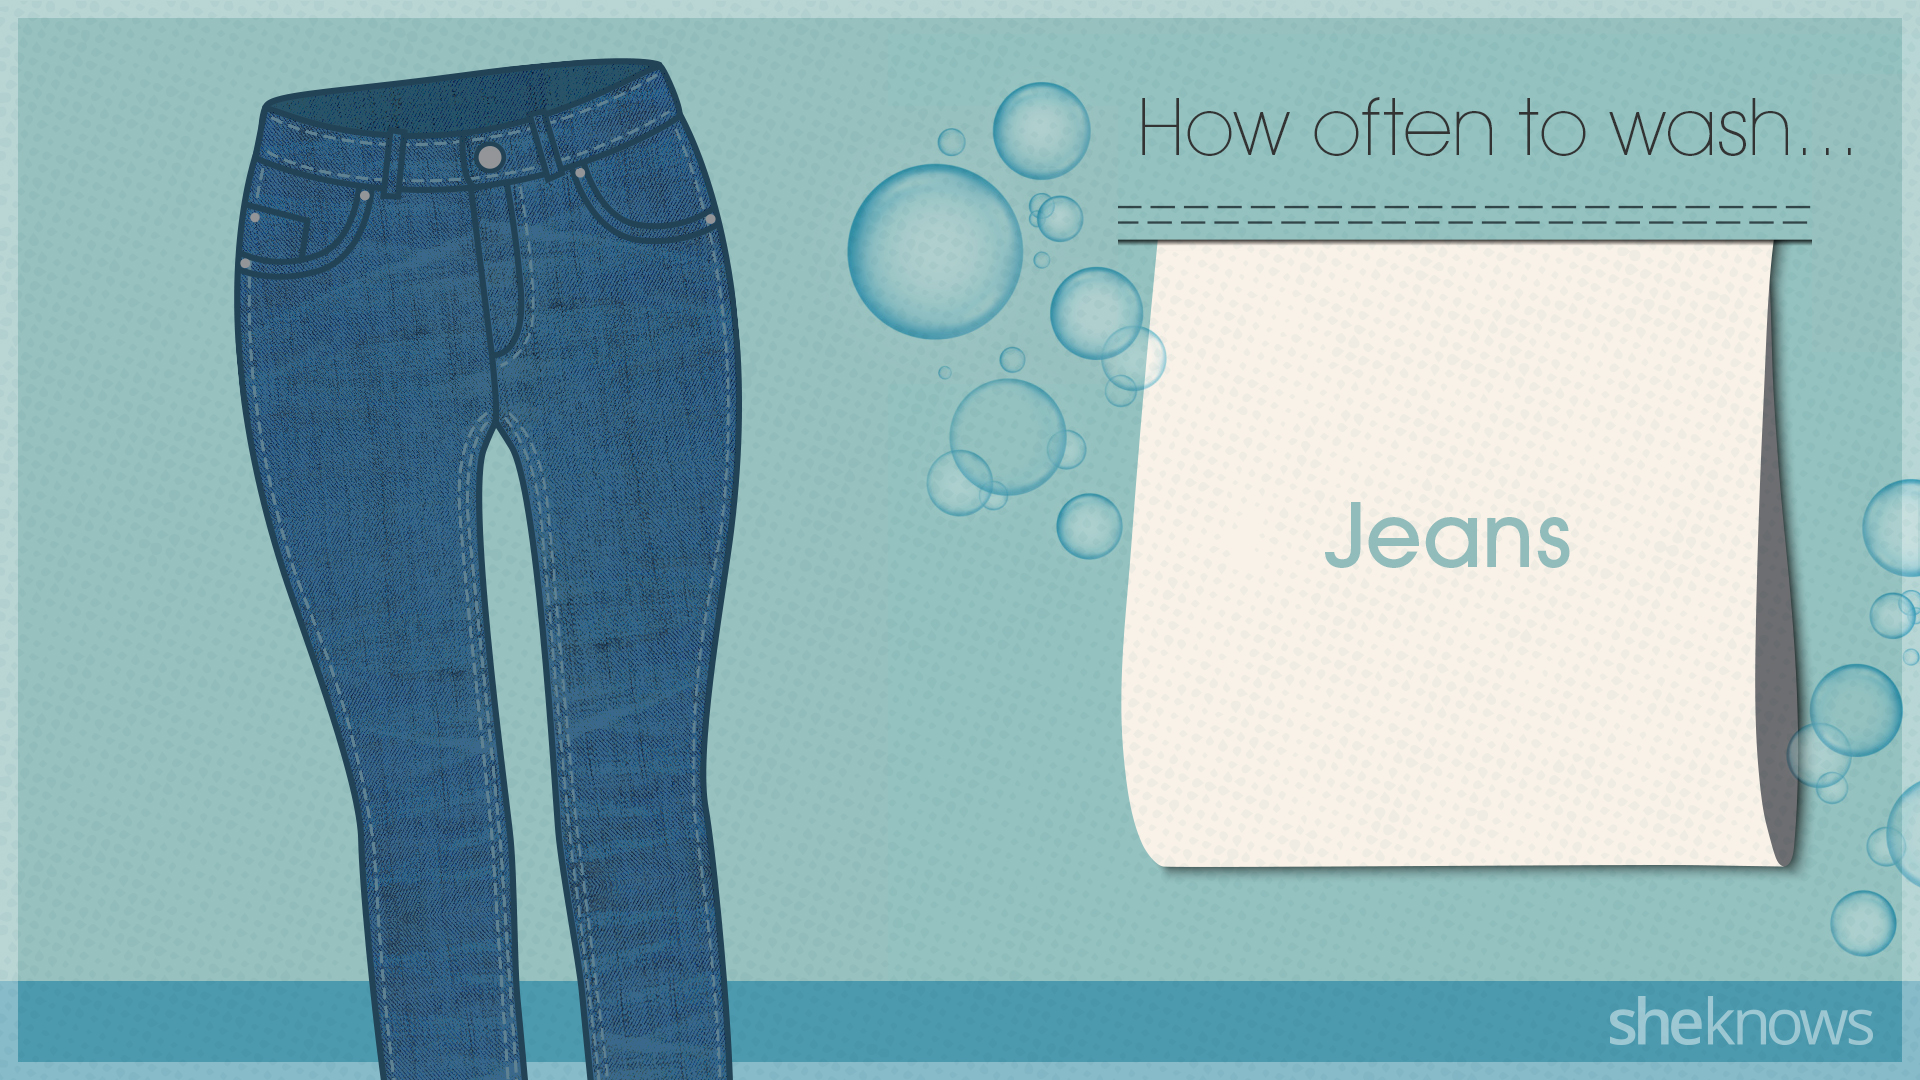 You're probably washing your clothes too much: Jeans